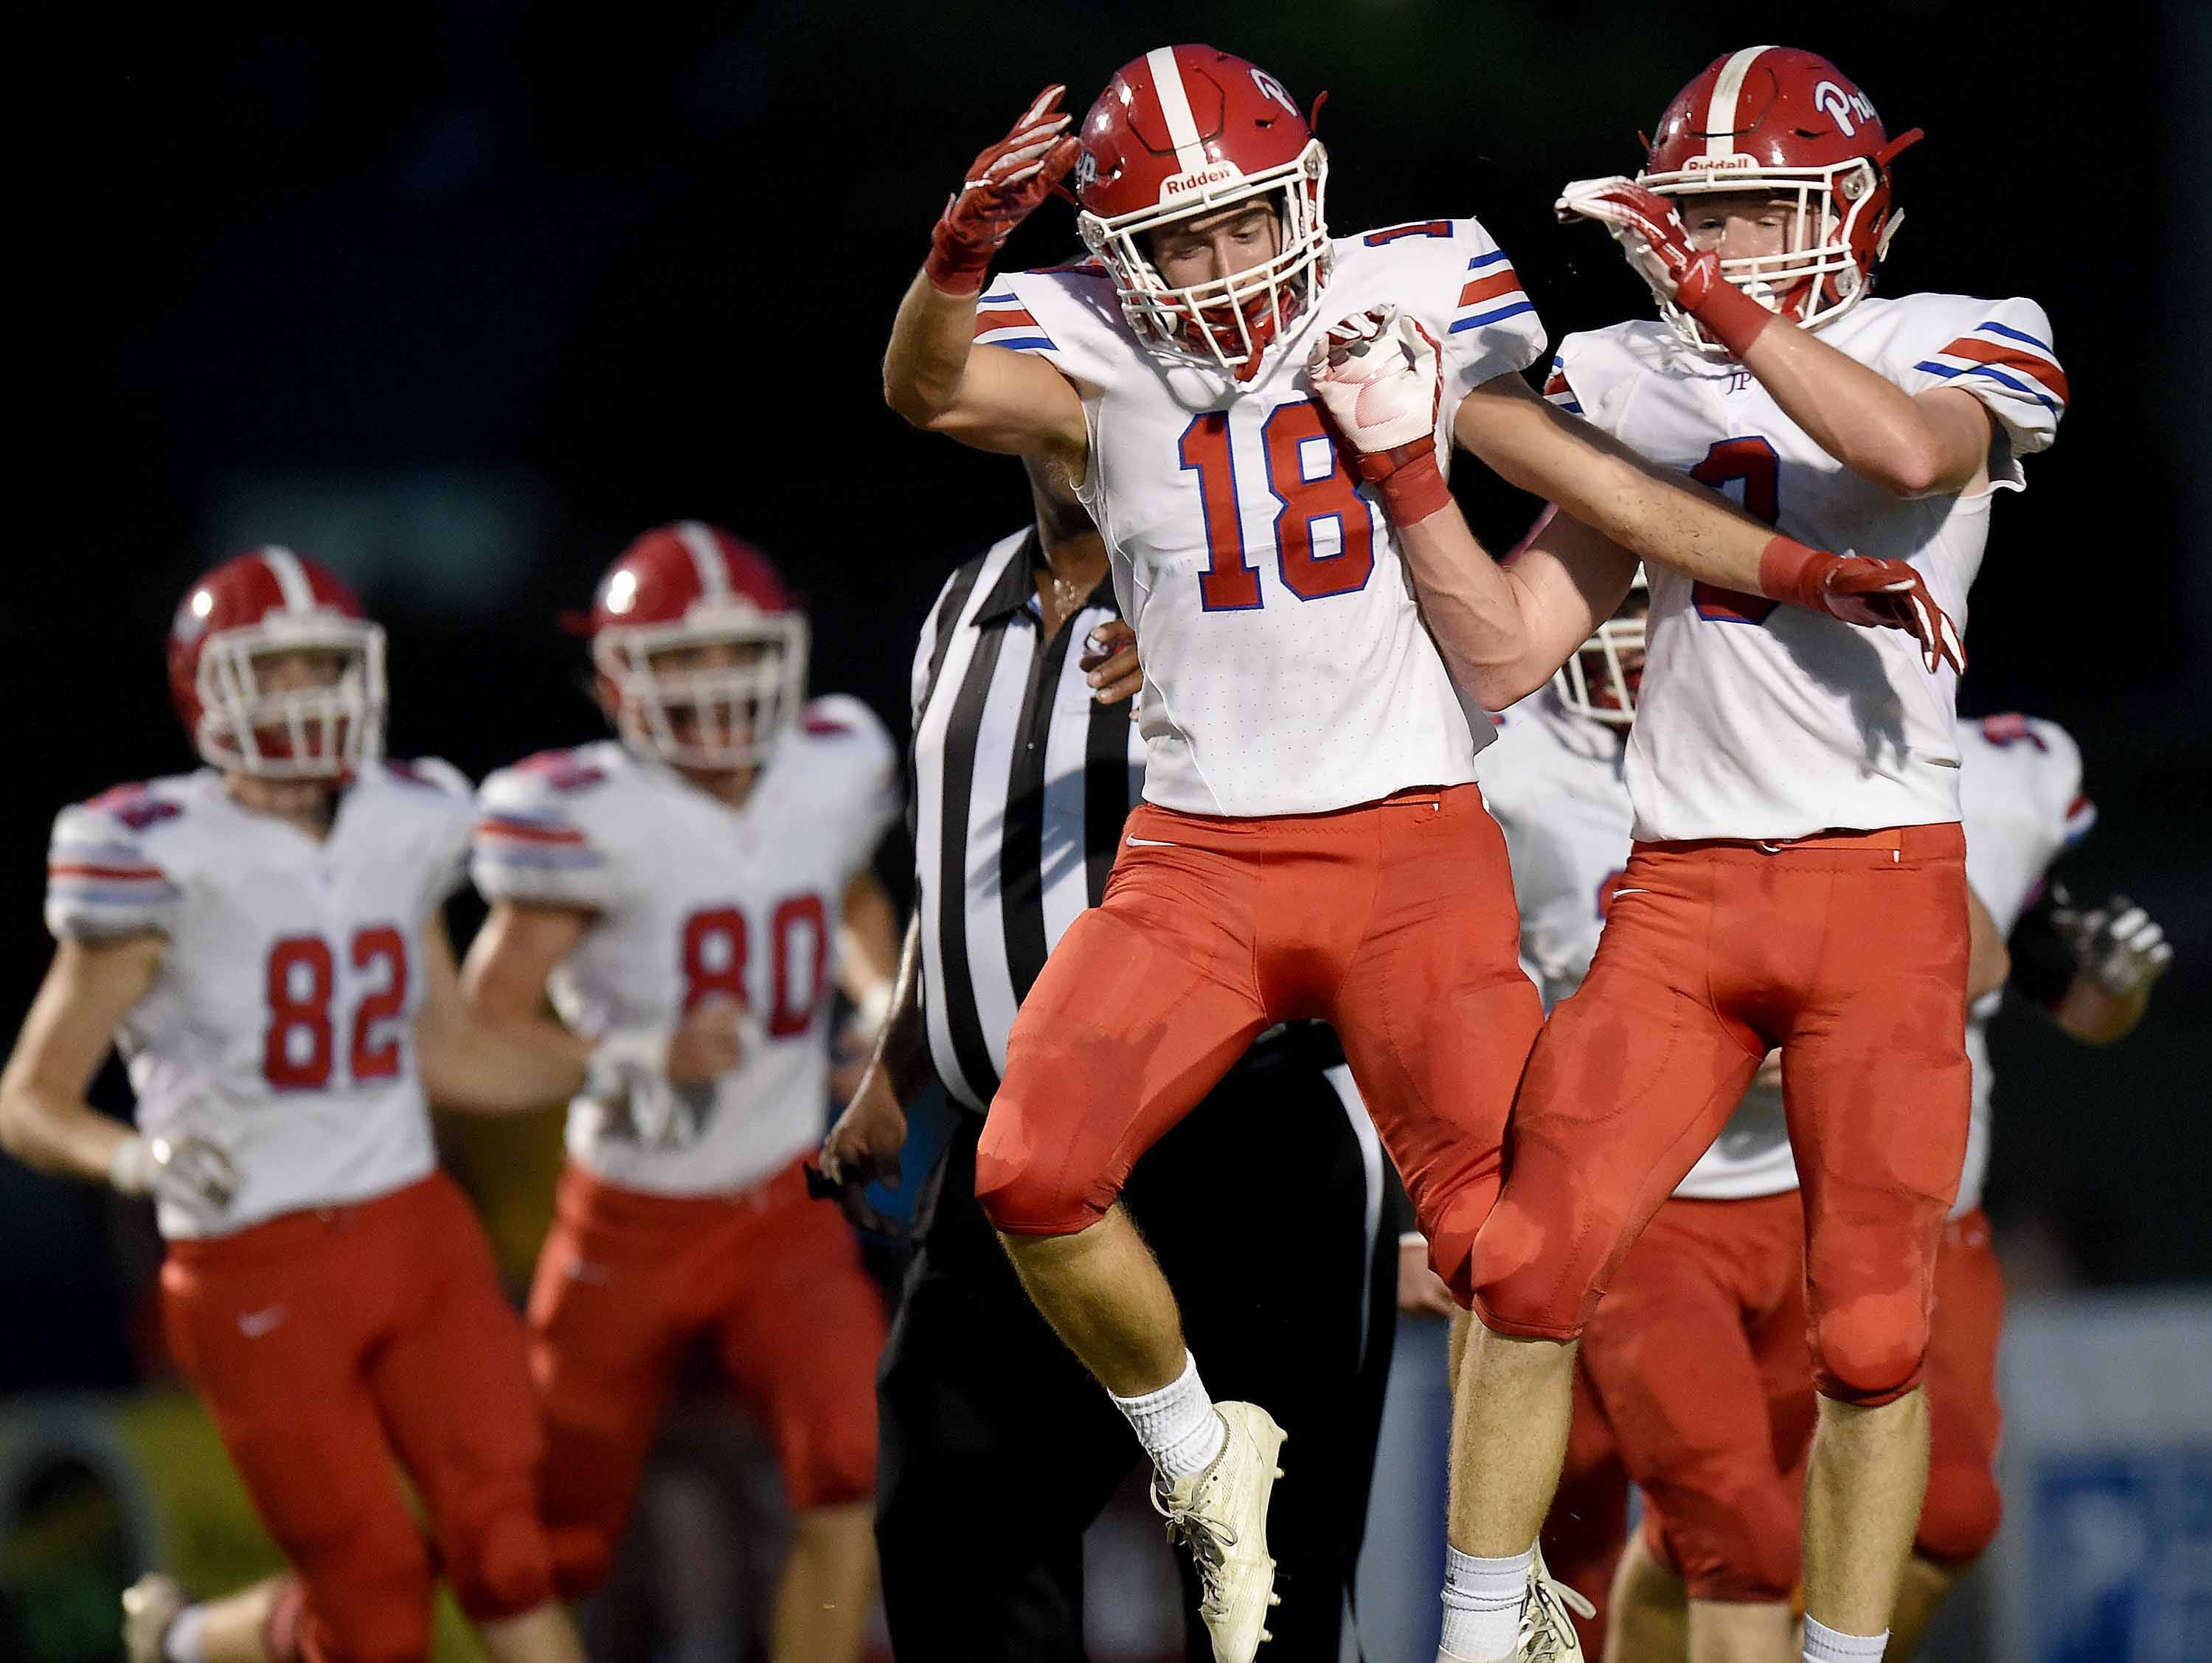 Prep's Spence Graves (right) celebrates his interception return for a touchdown with Robert Griffis (18) on Friday, September 14, 2018, at St. Joseph Catholic School in Madison, Miss.